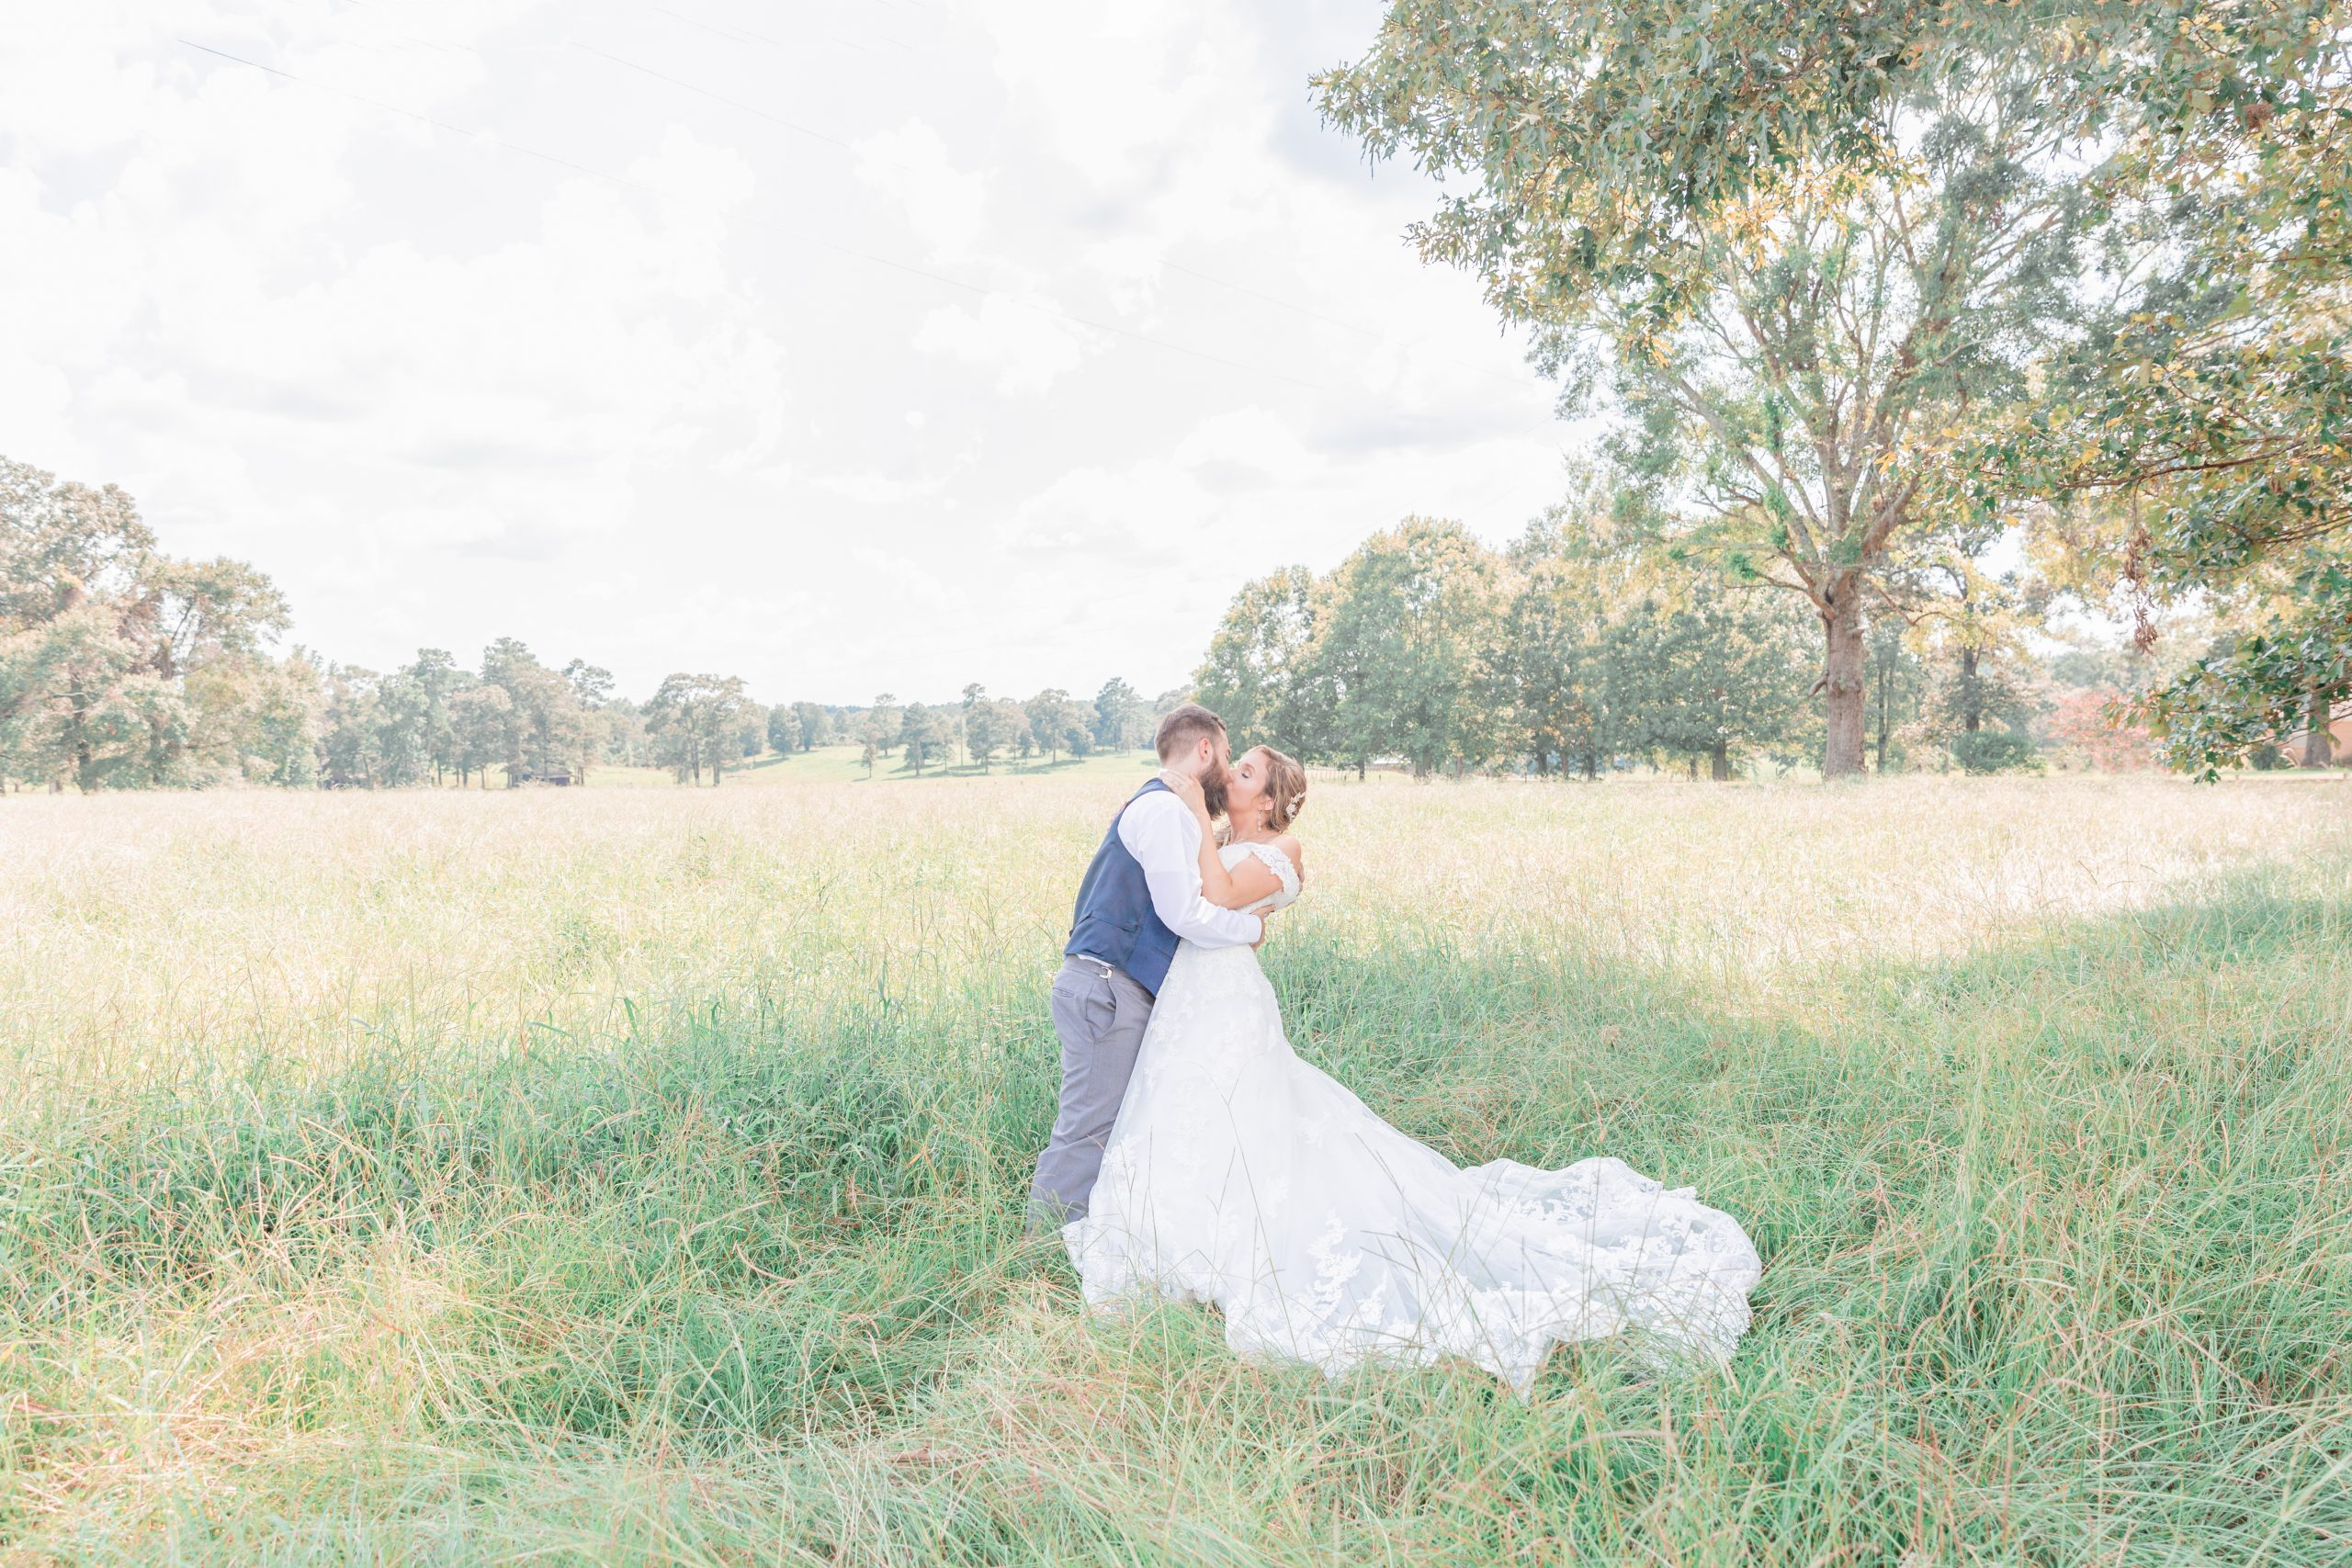 Mississippi Wedding Photographer | Grassy Field Bride and Groom Portraits | Wedding Dress | Bliss Bridal | I Do Bridal | Kissing | Dip